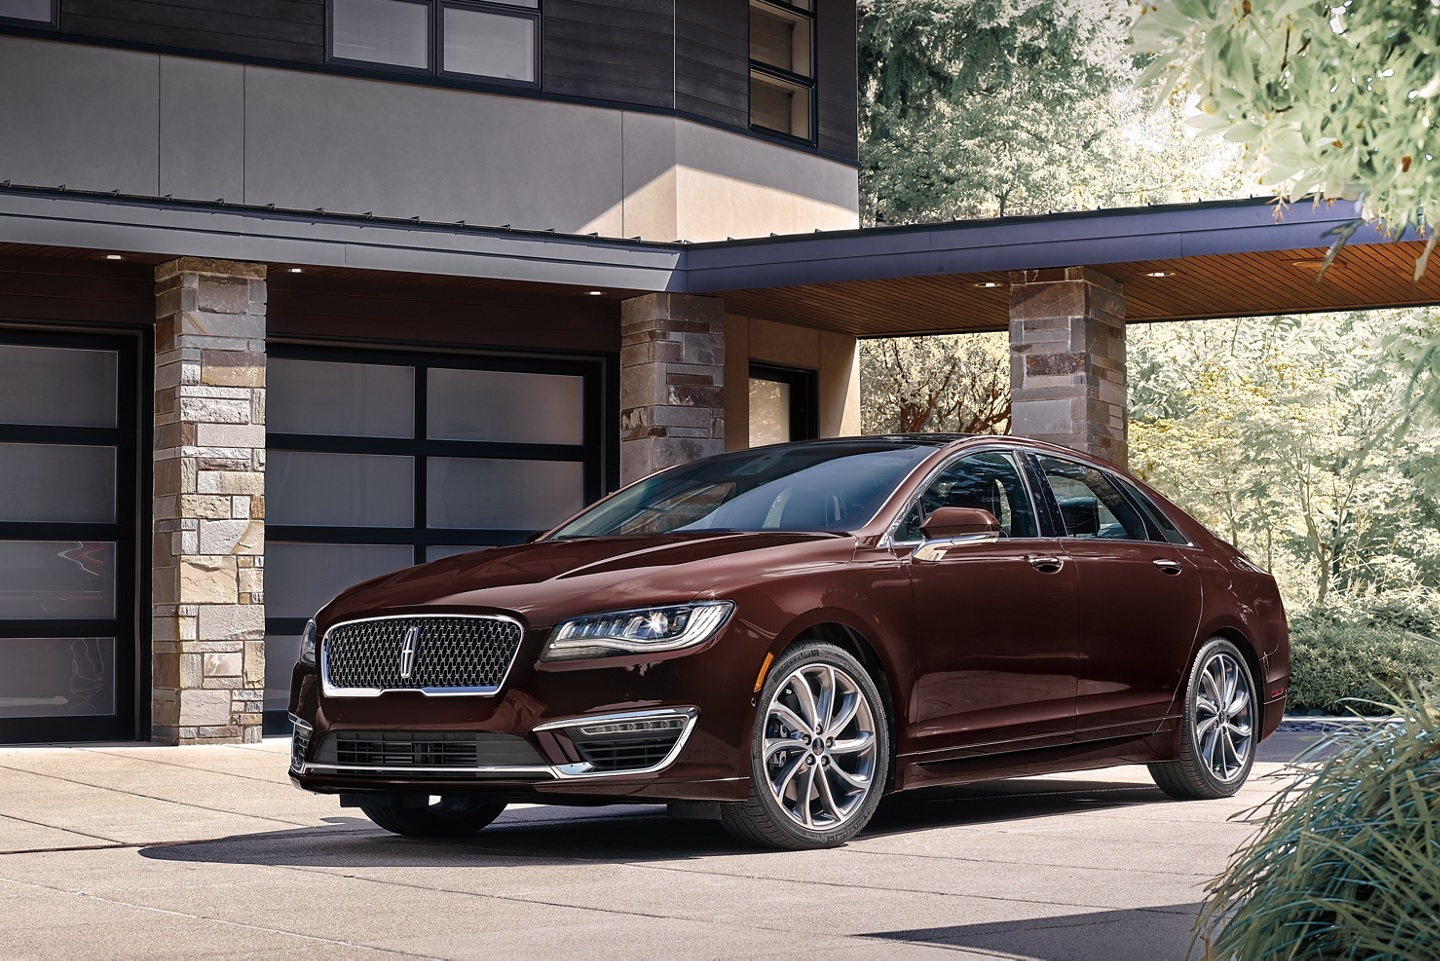 a Lincoln MKZ parked in front of an upscale modern home is an example of a car with the worst resale value